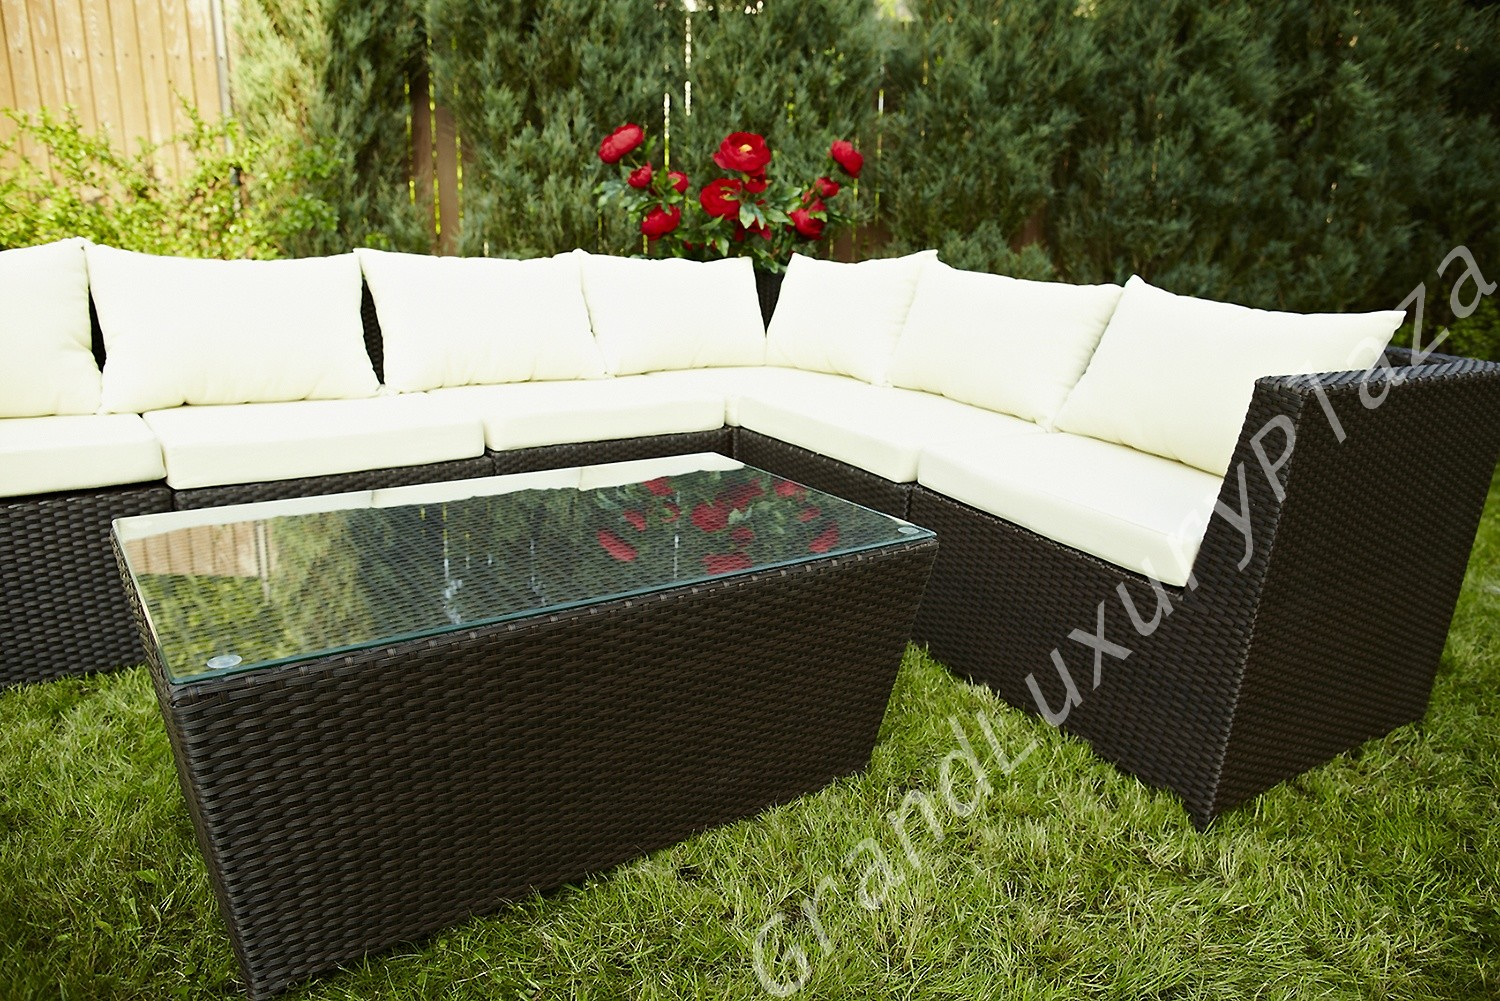 gartenm bel rattan rattanm bel terassenm bel wetterfest. Black Bedroom Furniture Sets. Home Design Ideas